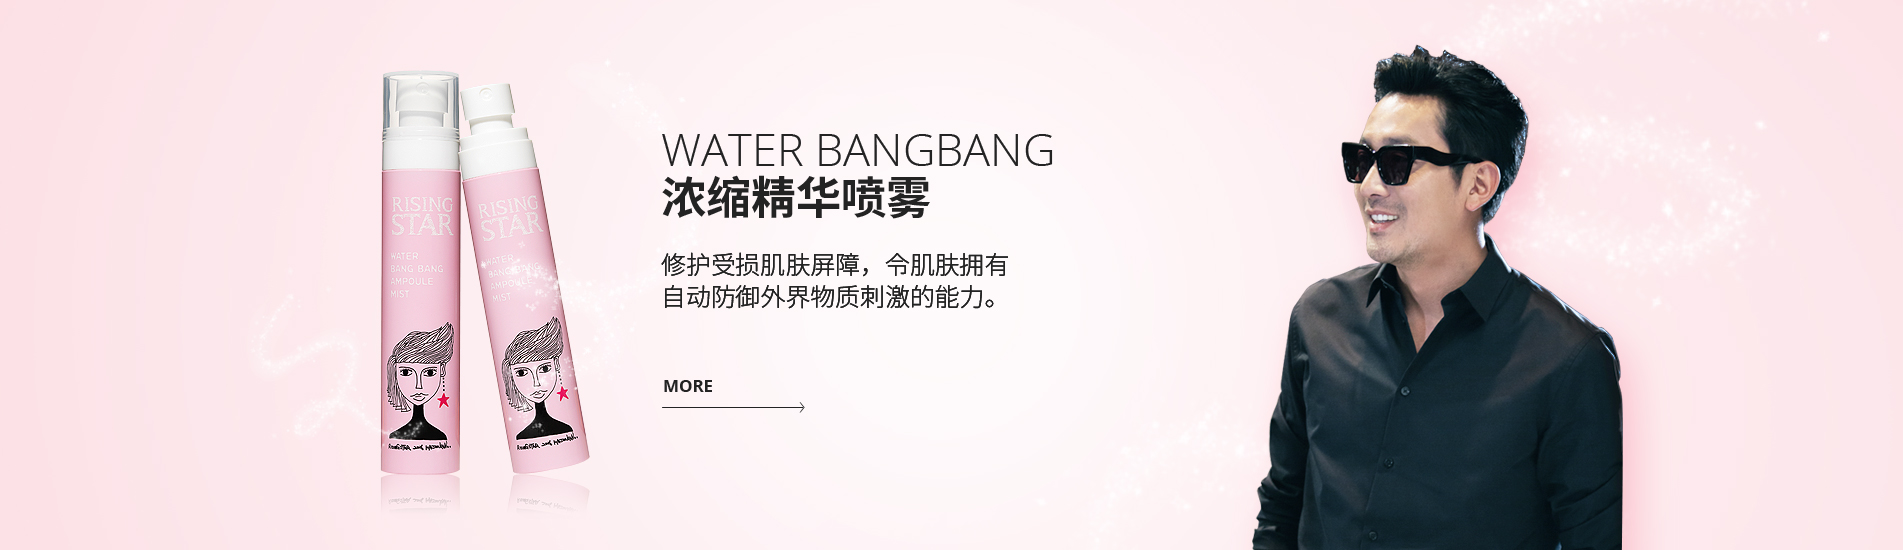 water bangbang ampoule mist